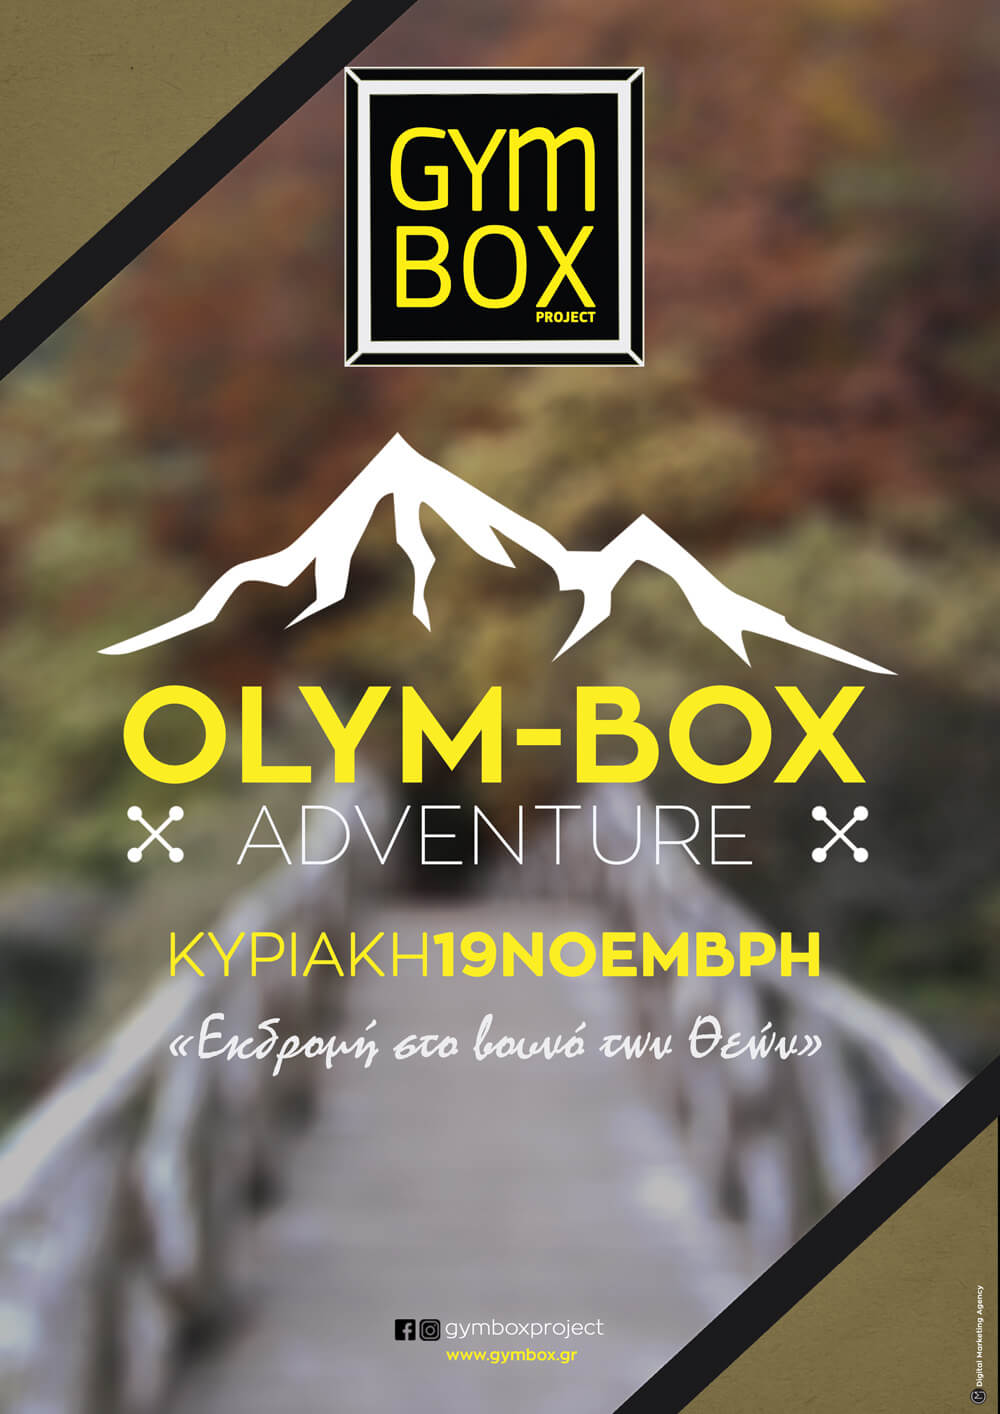 olymbox